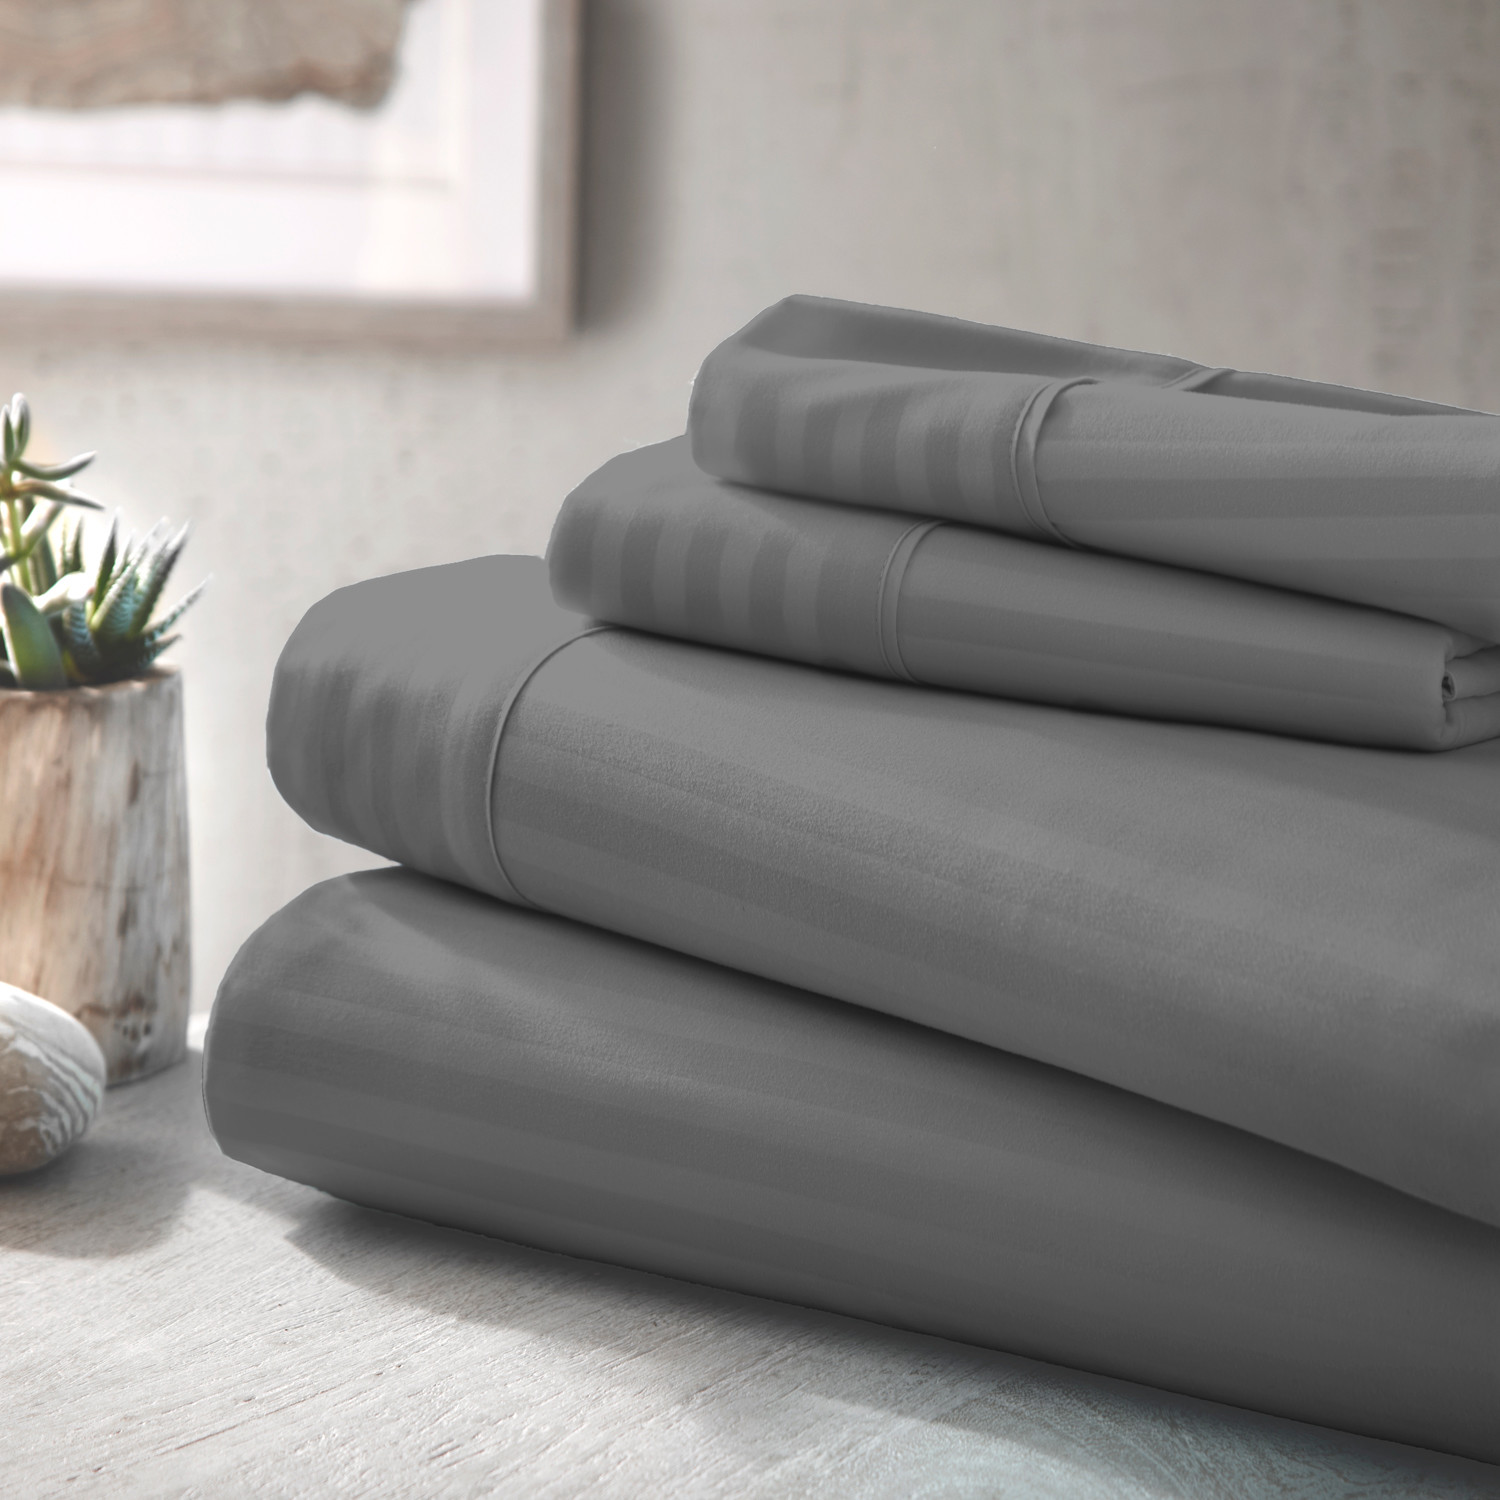 Urban Loft Luxury Soft Striped Bed Sheets 4 Piece Set Gray